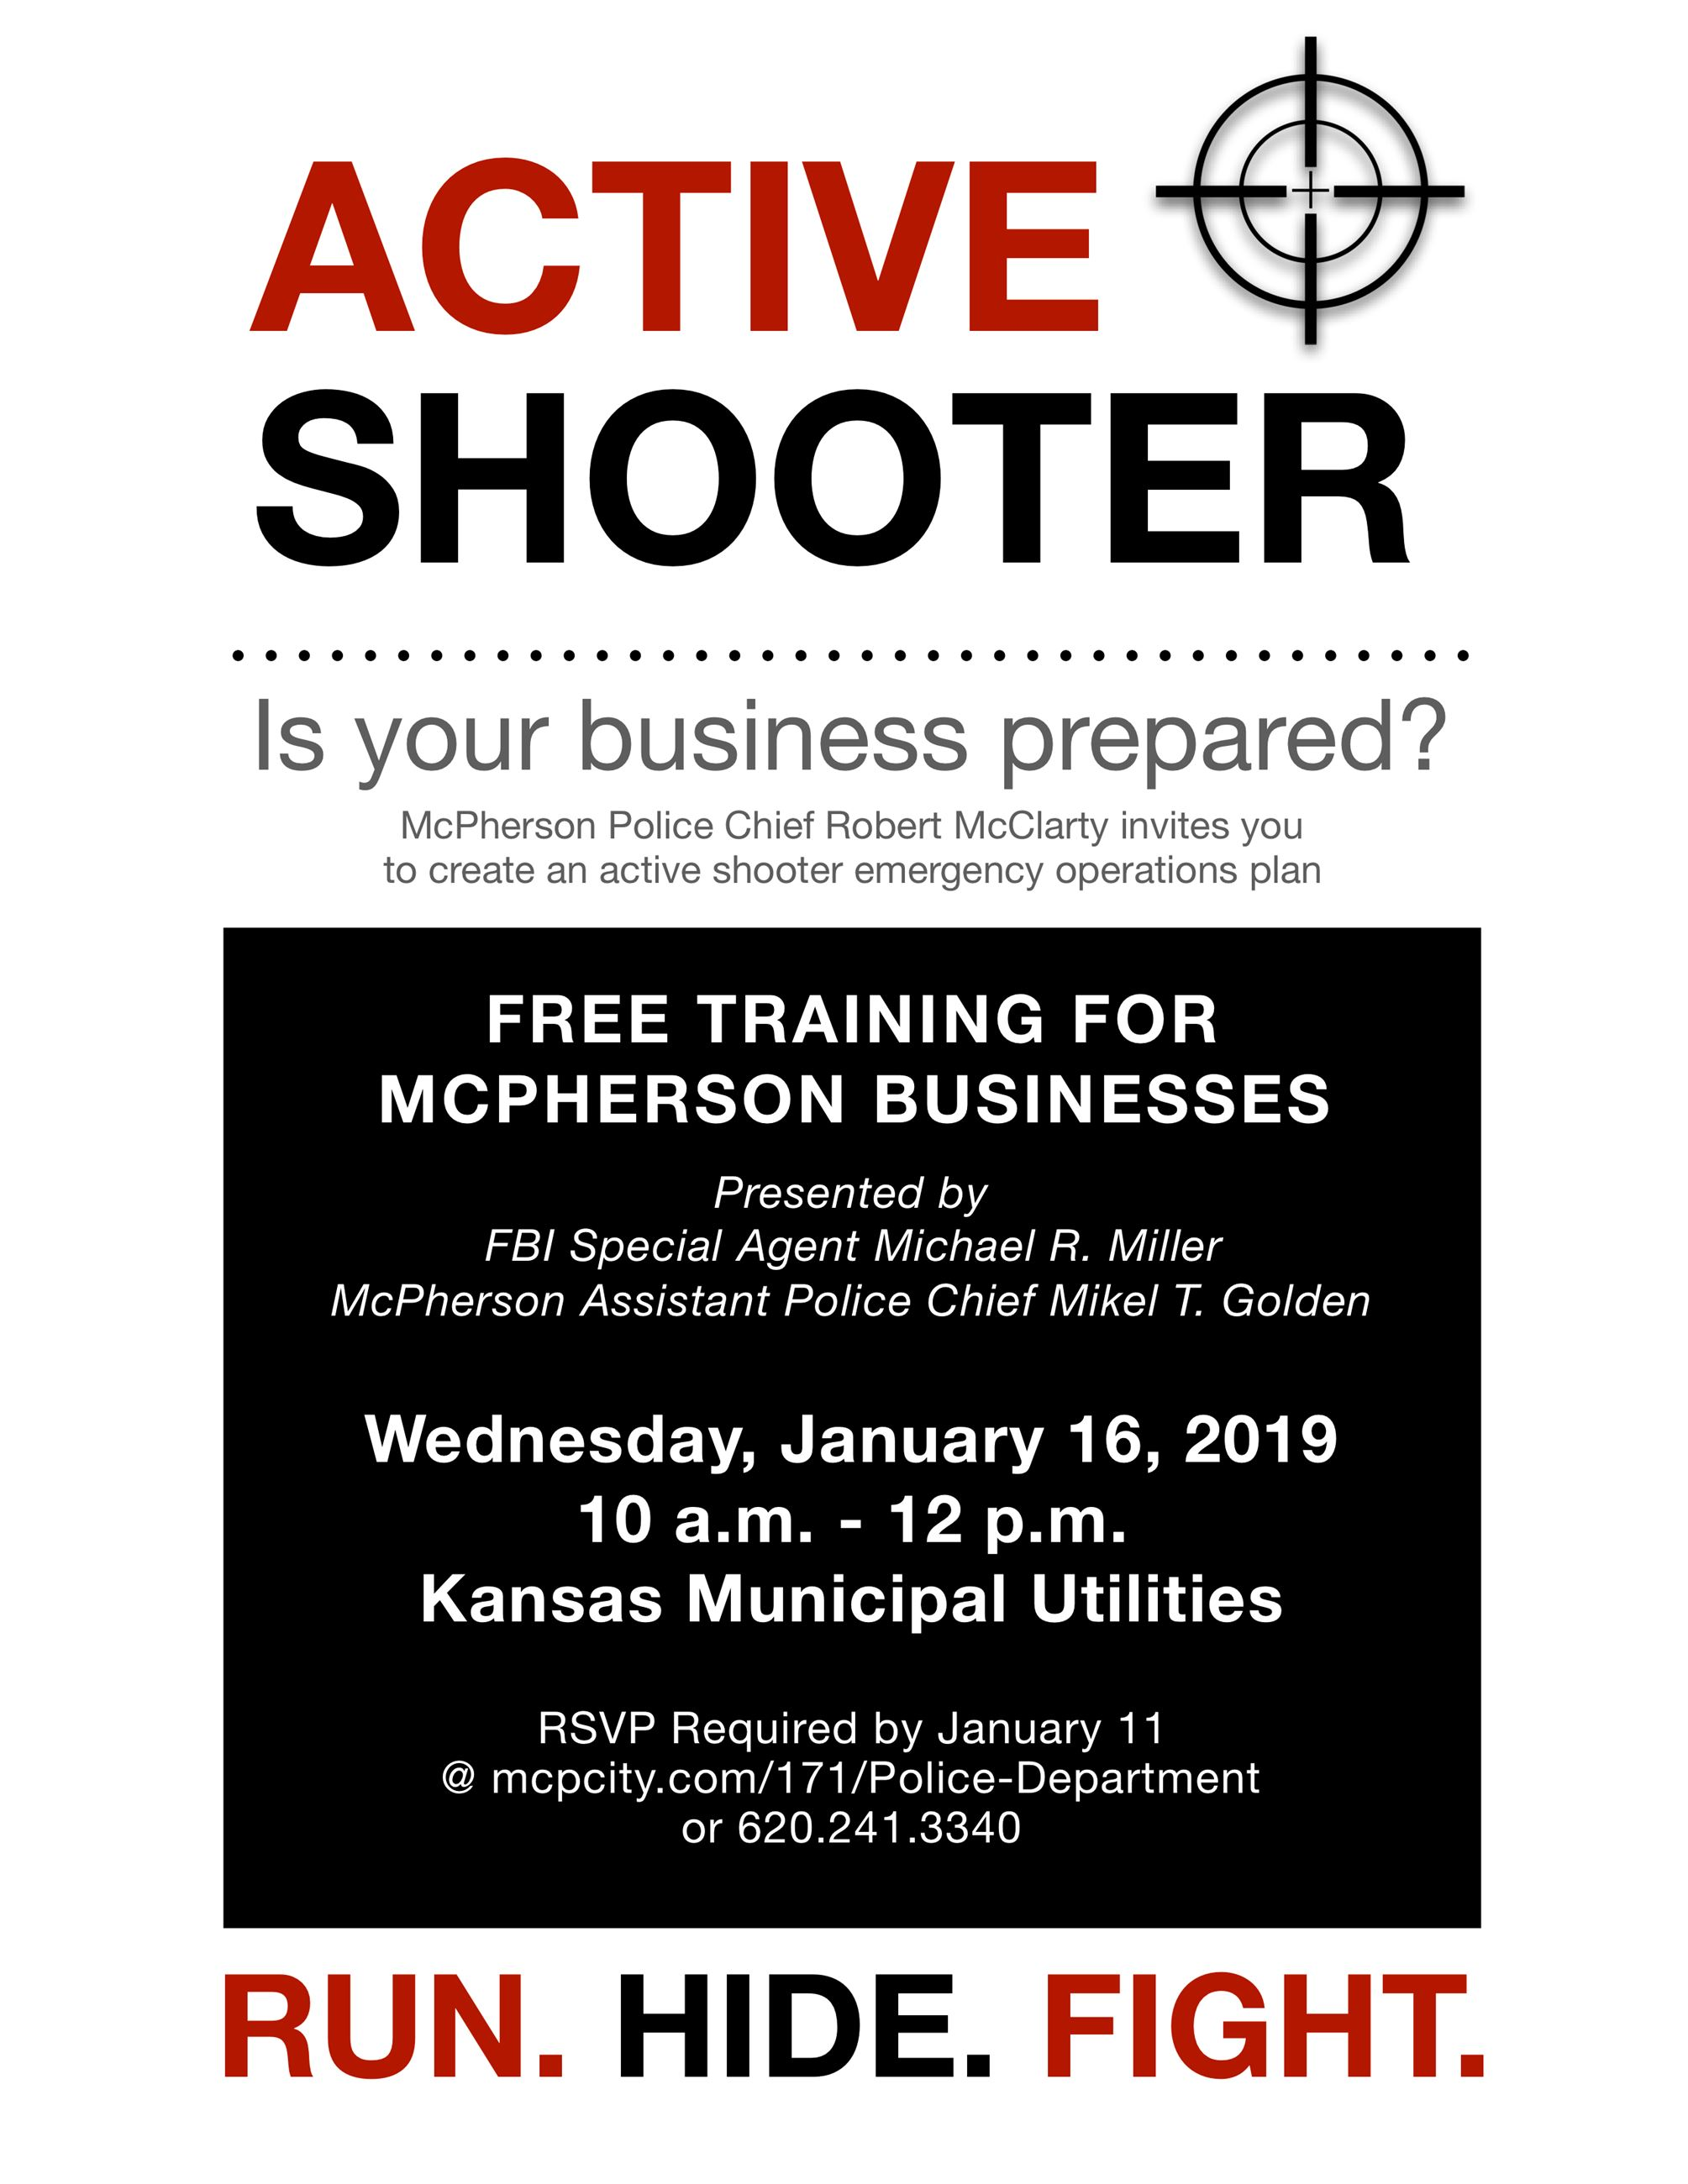 Poster with the words ACTIVE SHOOTER promoting an active shooter response training for businesses